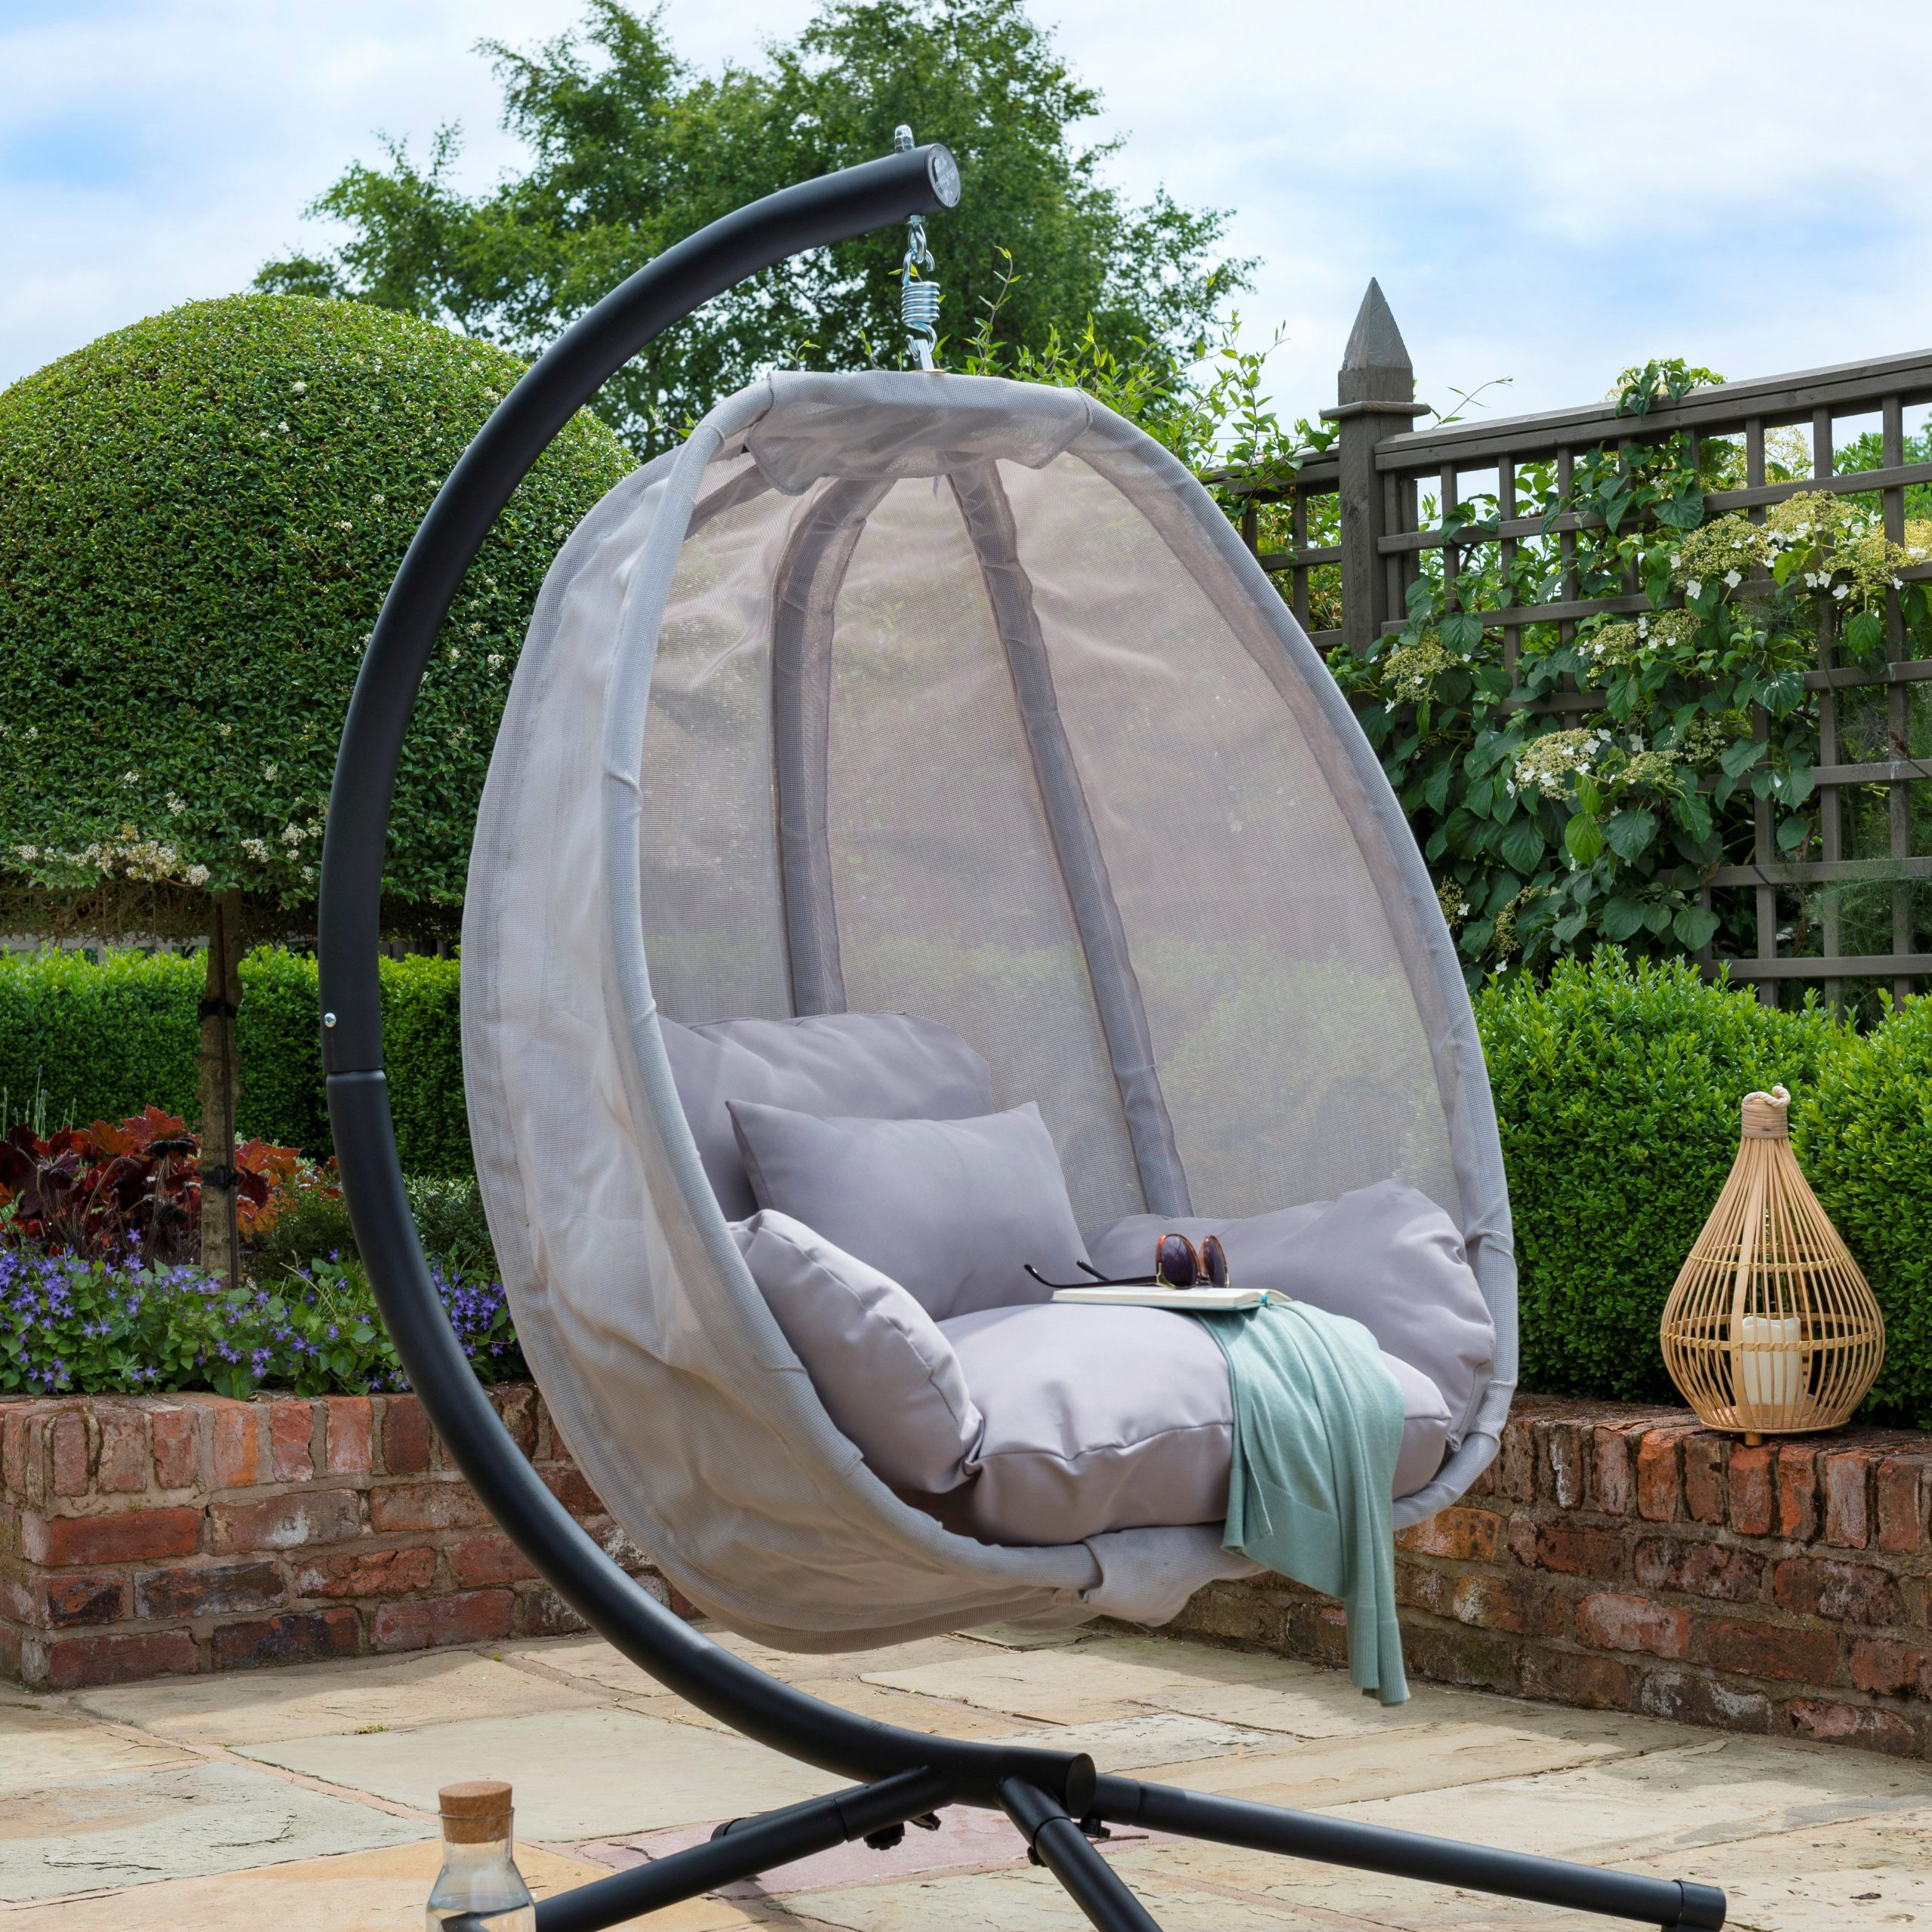 Pedro Swing Seat With Stand | Swing Seat, Hanging Egg Chair Within Outdoor Pvc Coated Polyester Porch Swings With Stand (View 19 of 25)